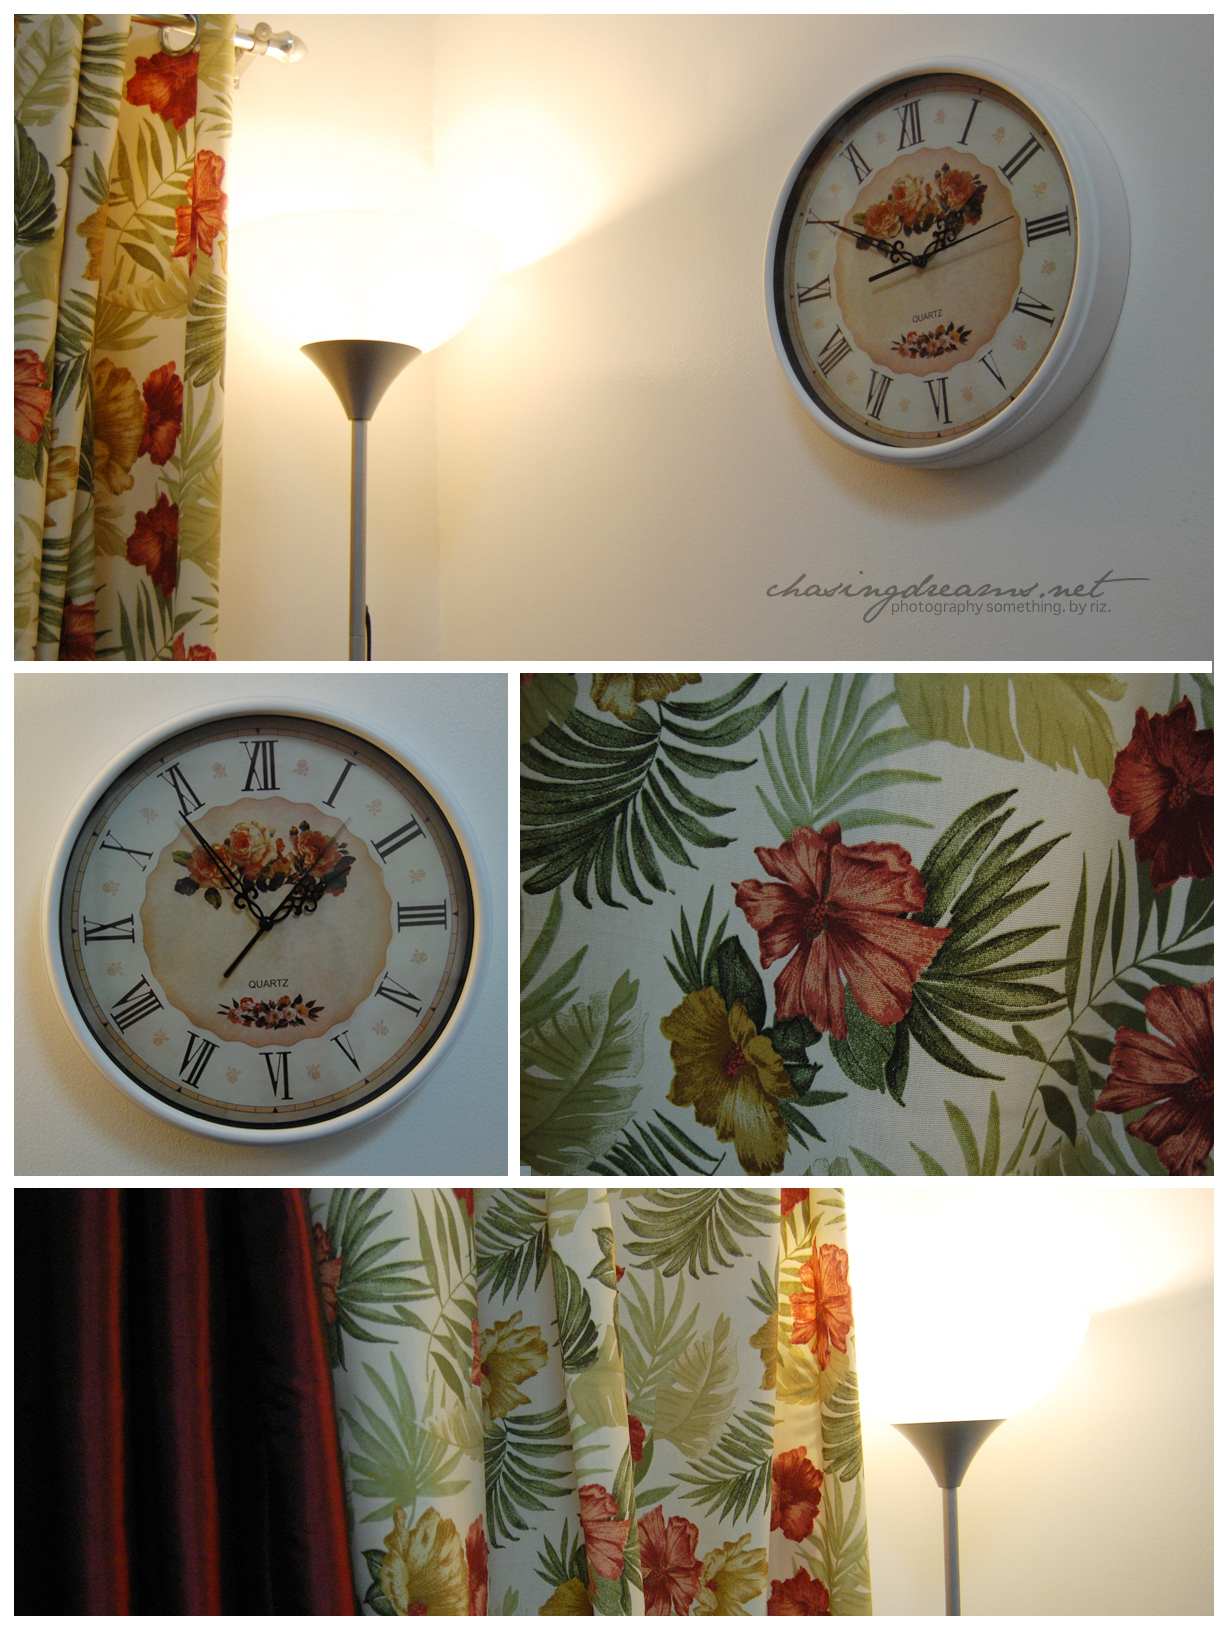 Vintage-y Curtains, Wall Clock